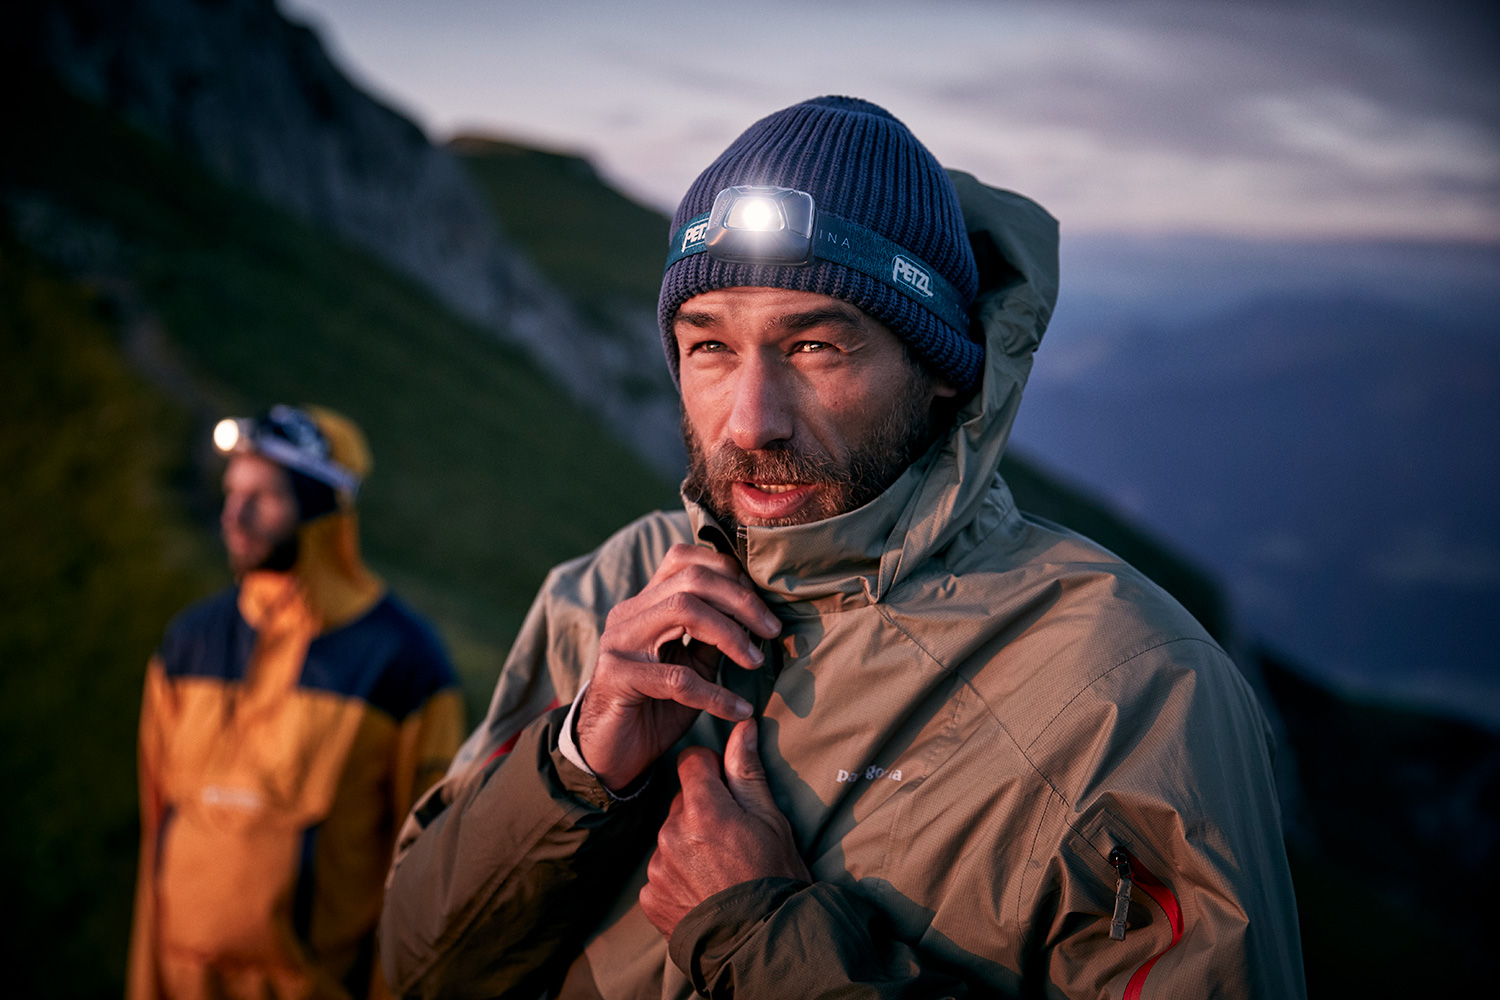 Portrait of a man closing his jacket while wearing a petzl headtorch while on a trailrun in the sunrises